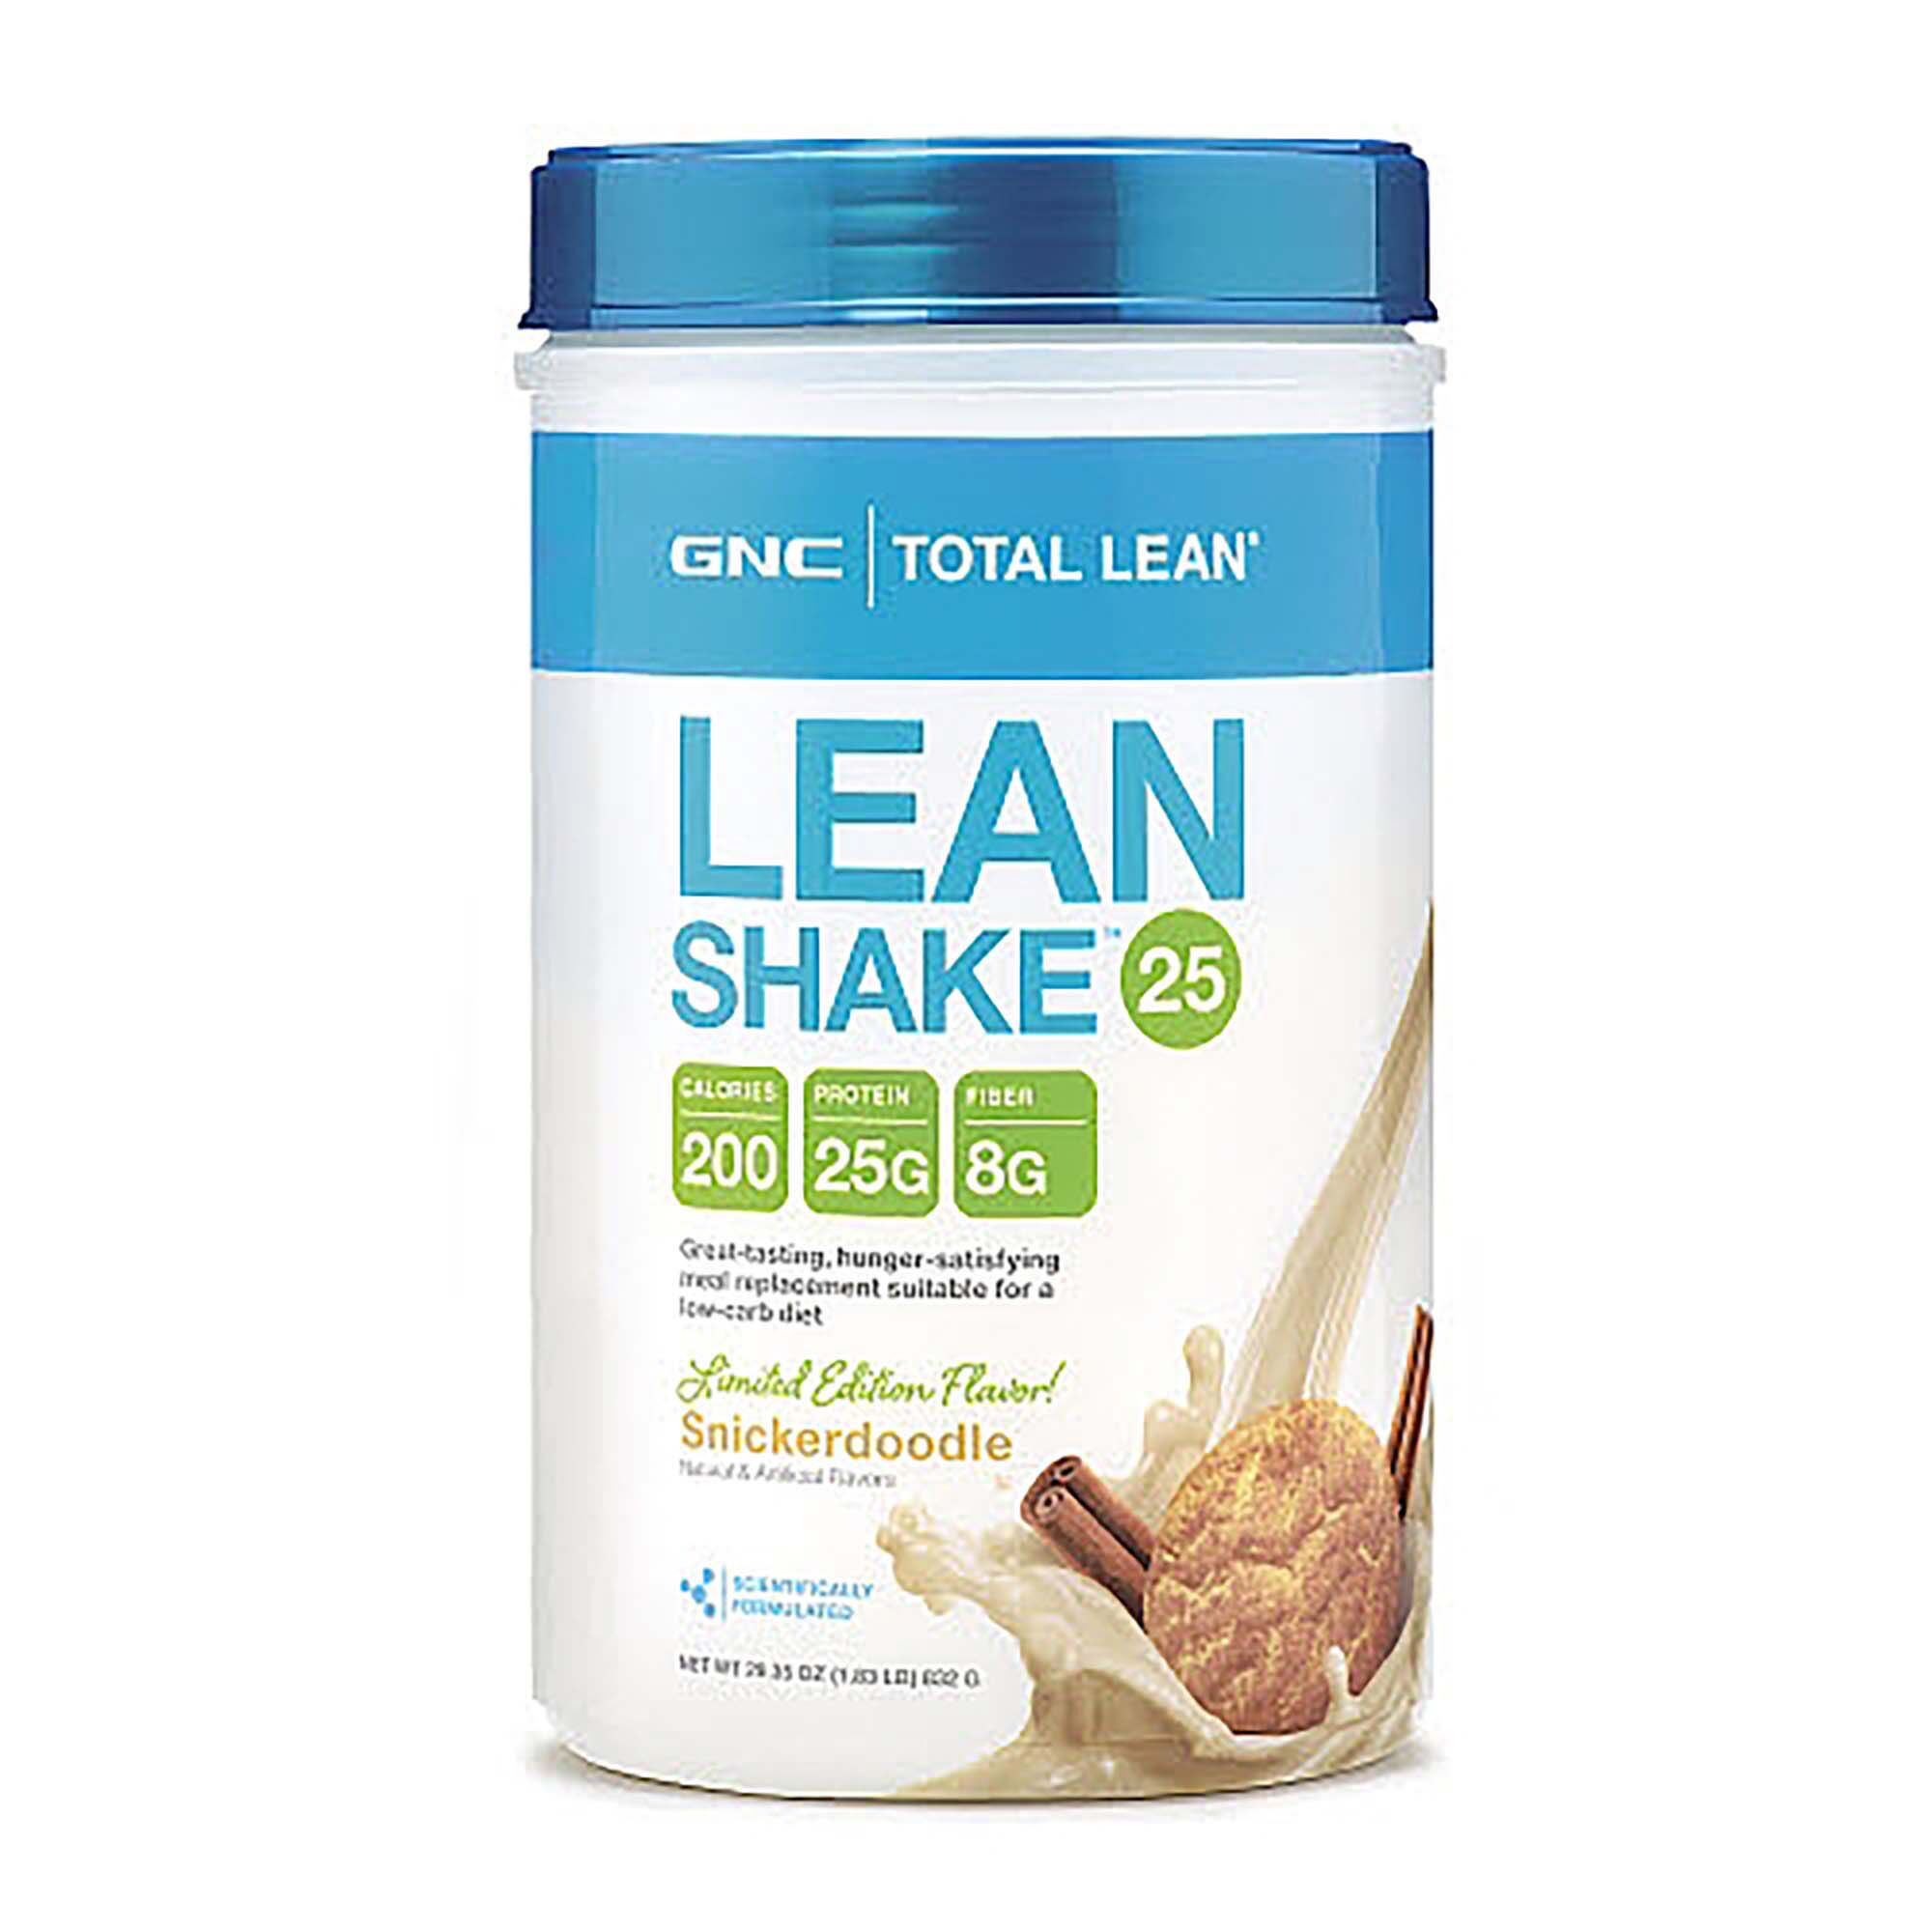 Lean Shake? 25 - Snickerdoodle - 2 Lb(S) - GNC Total Lean? - Meal Replacement Powders